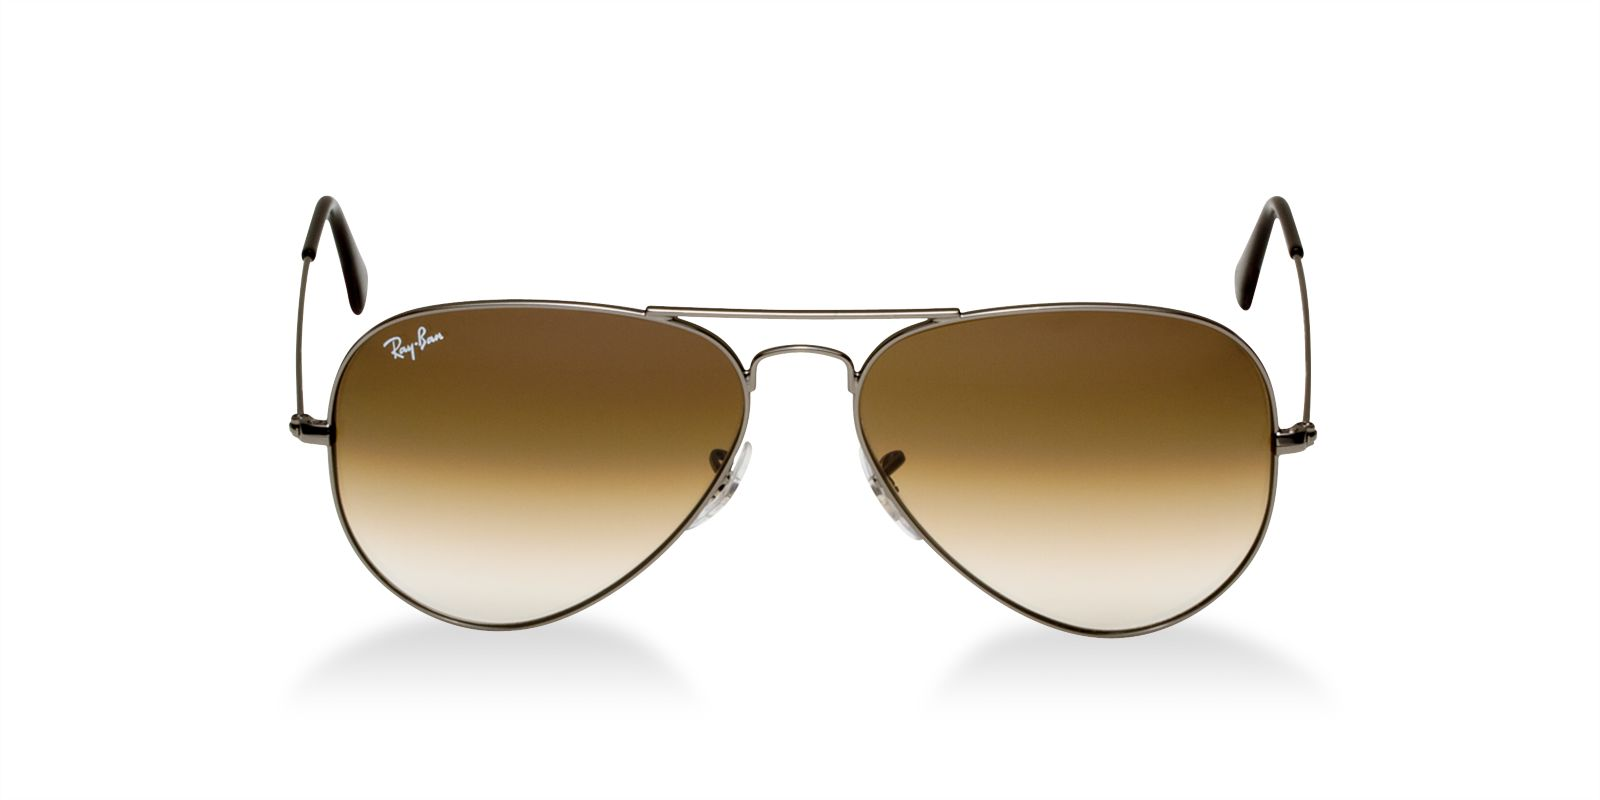 3440dc99c6 Previous  Next. Previous  Next. RAY-BAN RB3025 004 51 GUNMETAL BROWN  AVIATOR SUNGLASSES